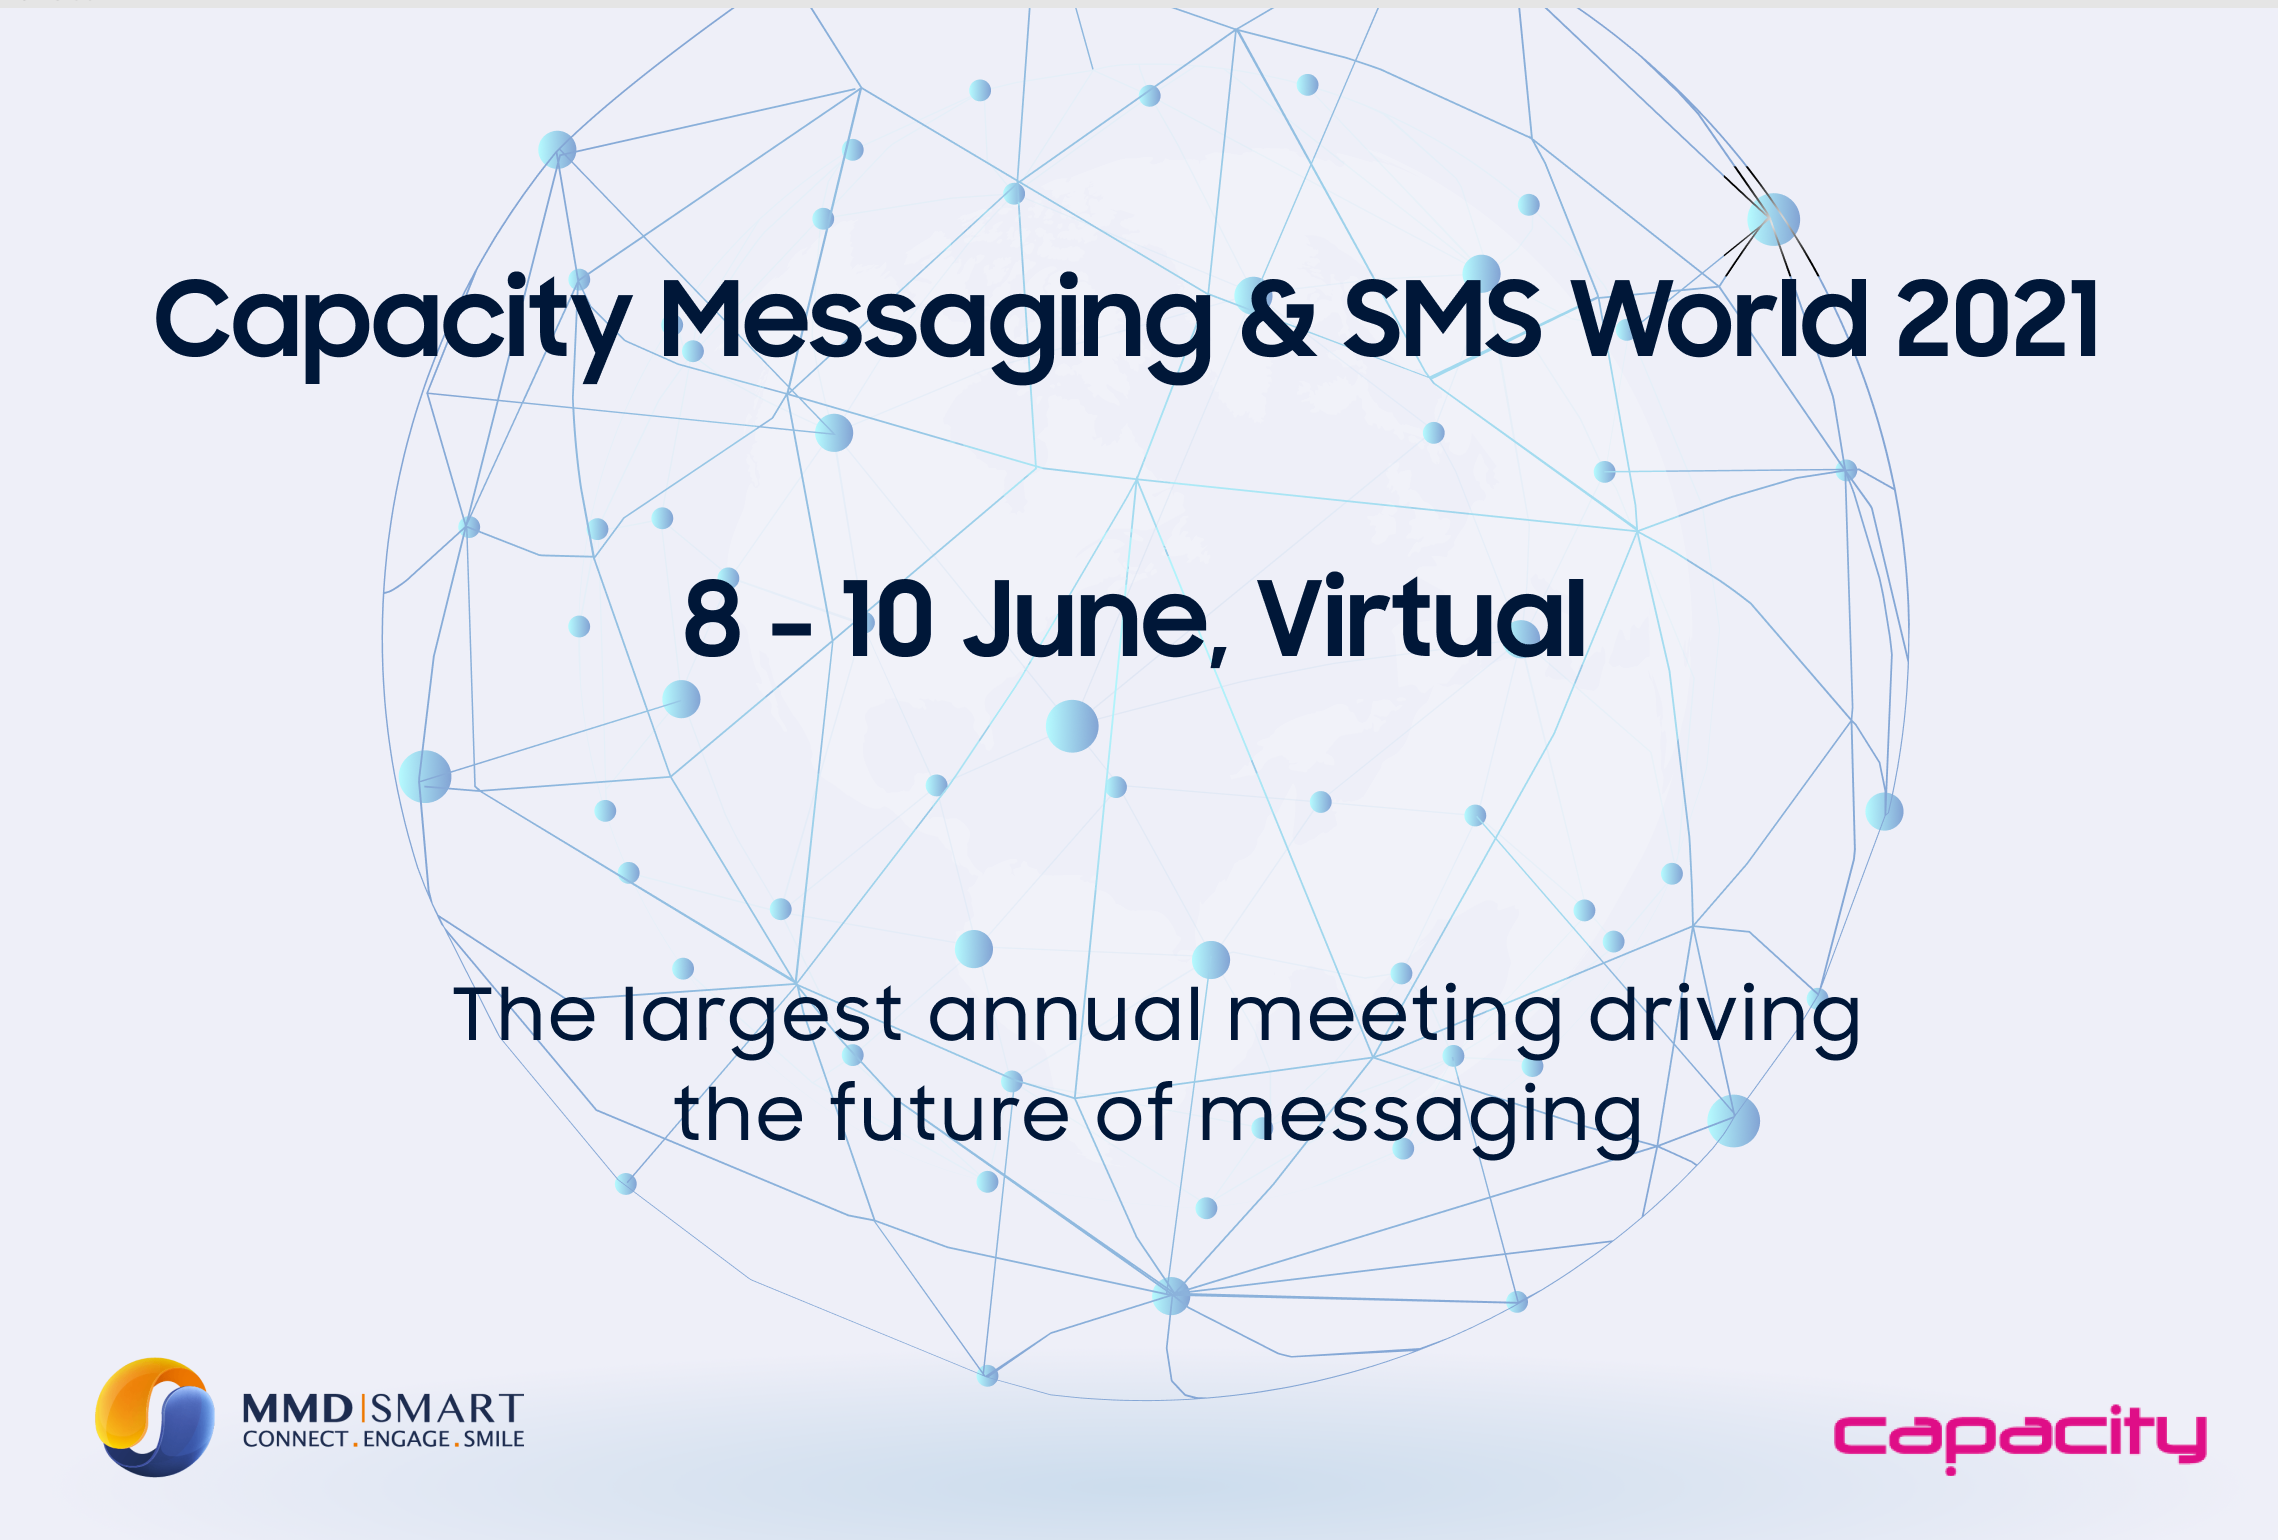 Capacity Messaging & SMS World